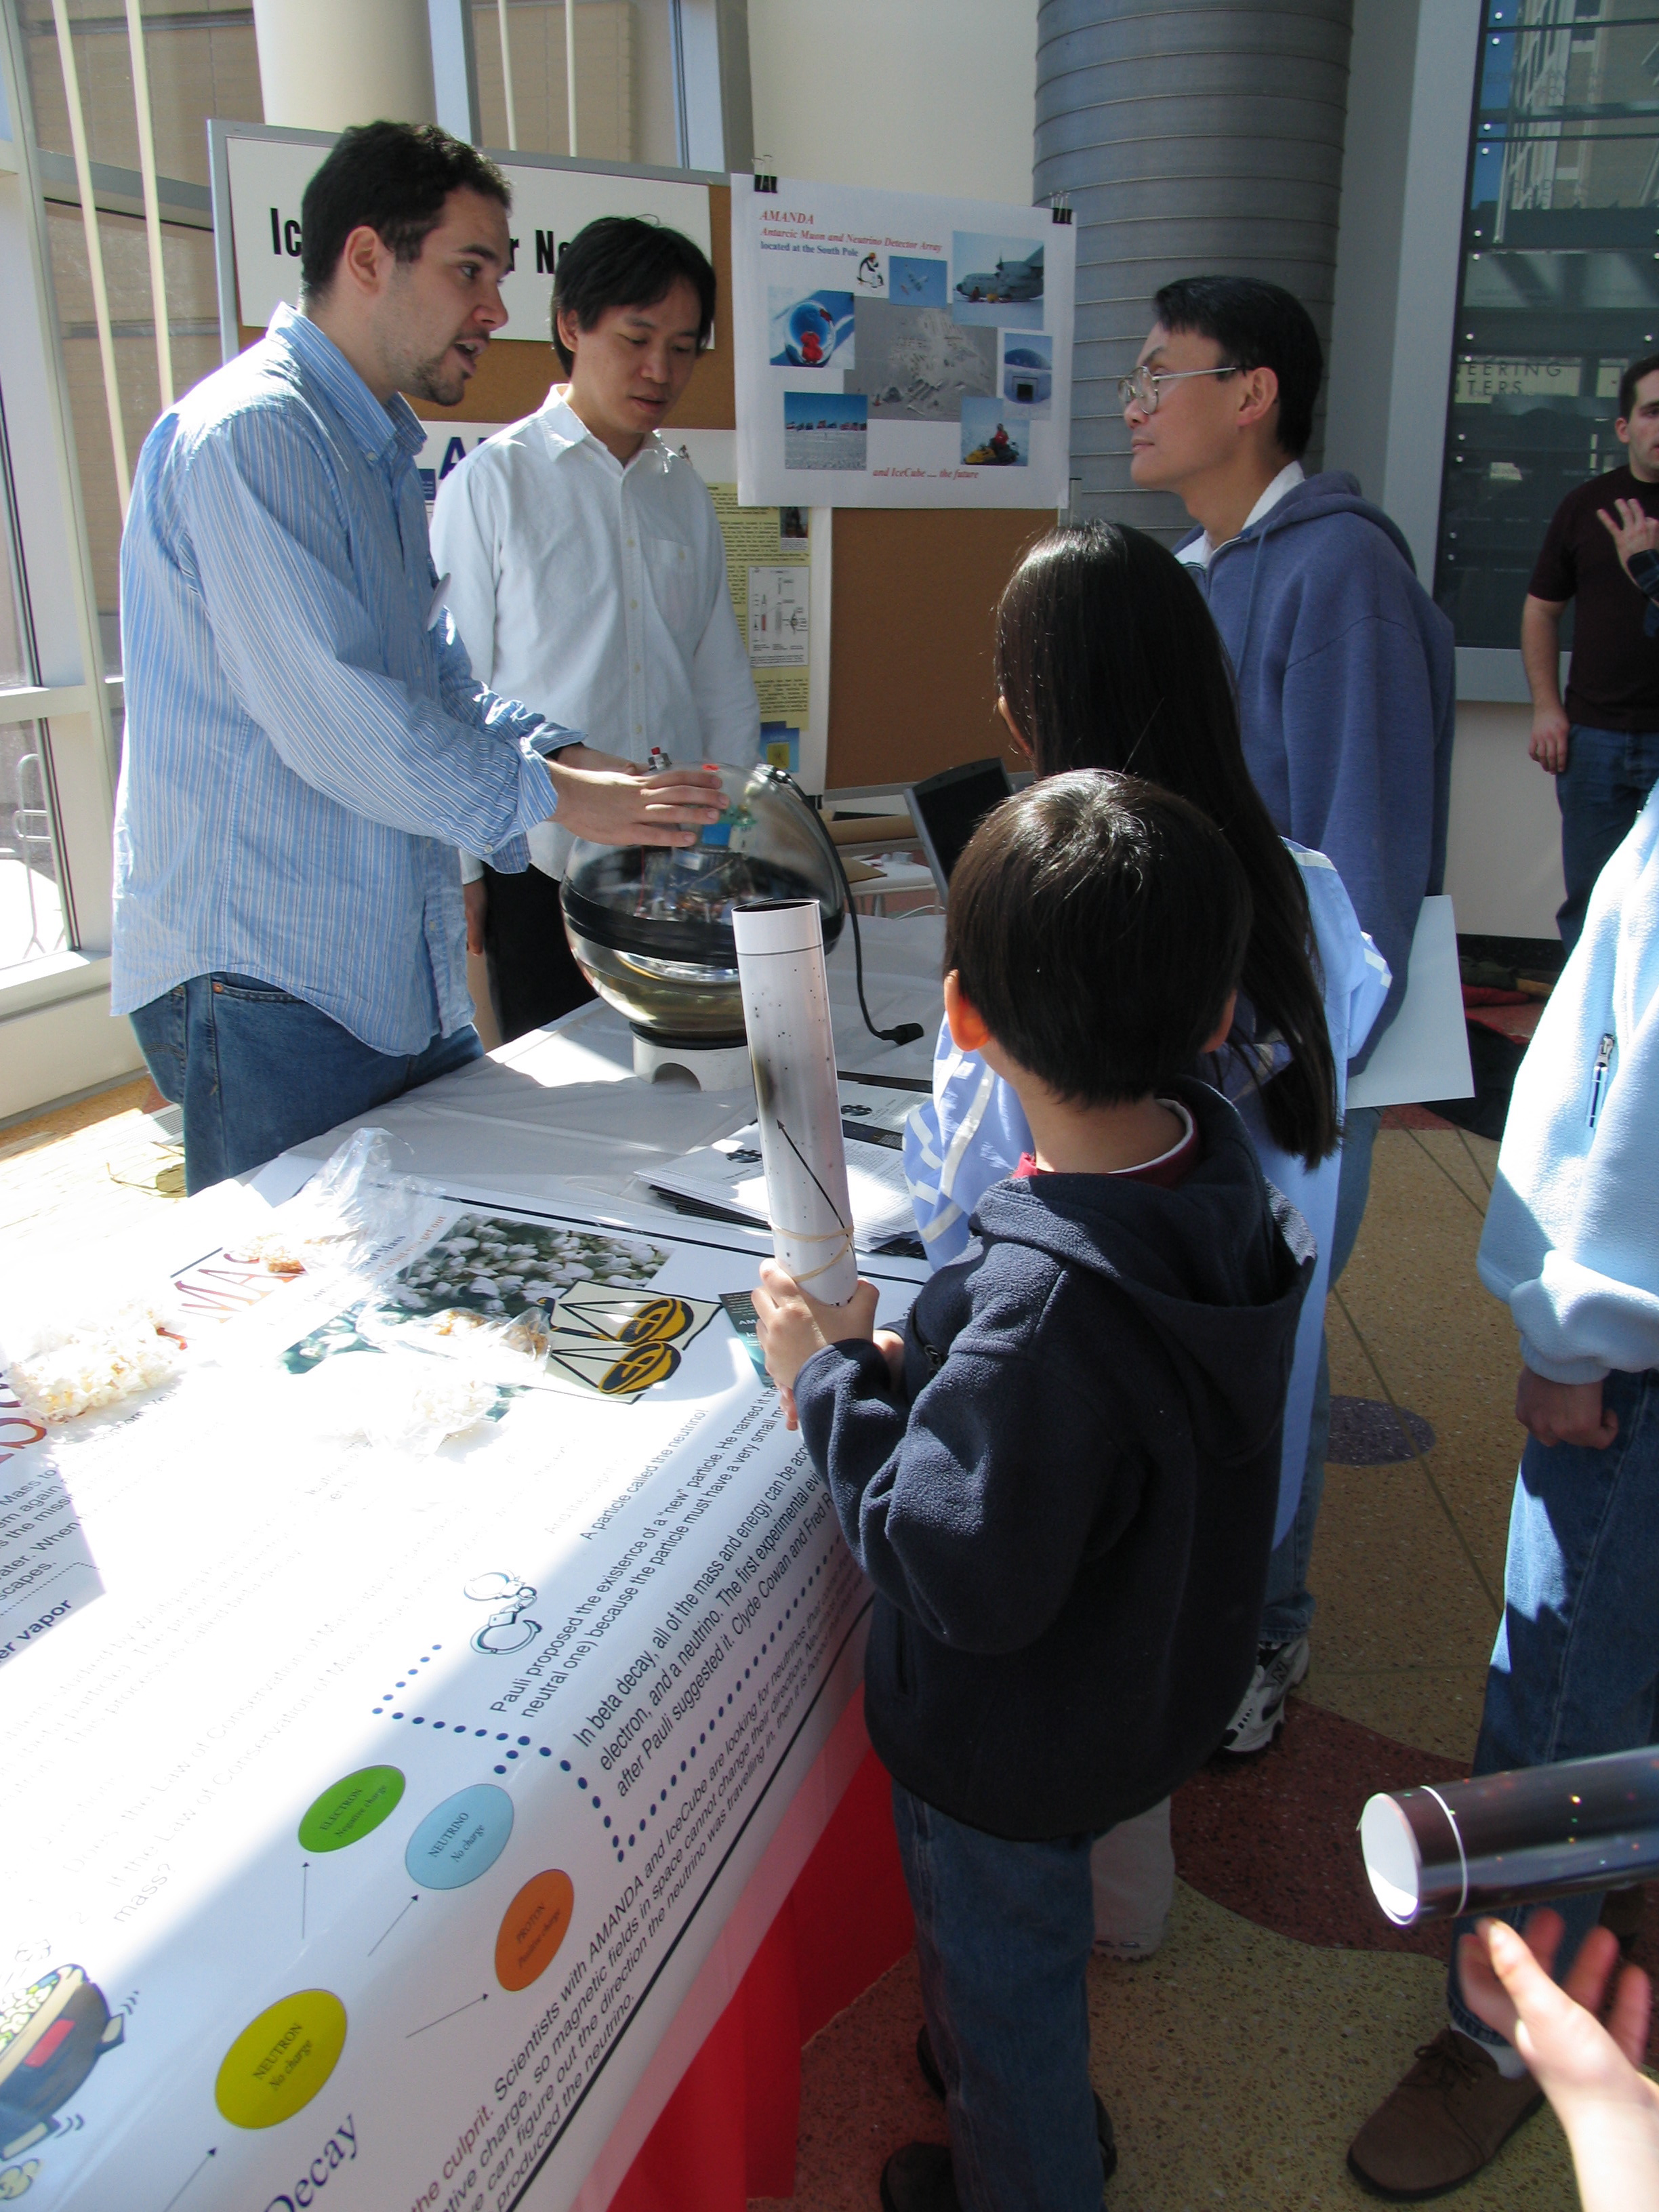 IceCube at UW Science Expeditions